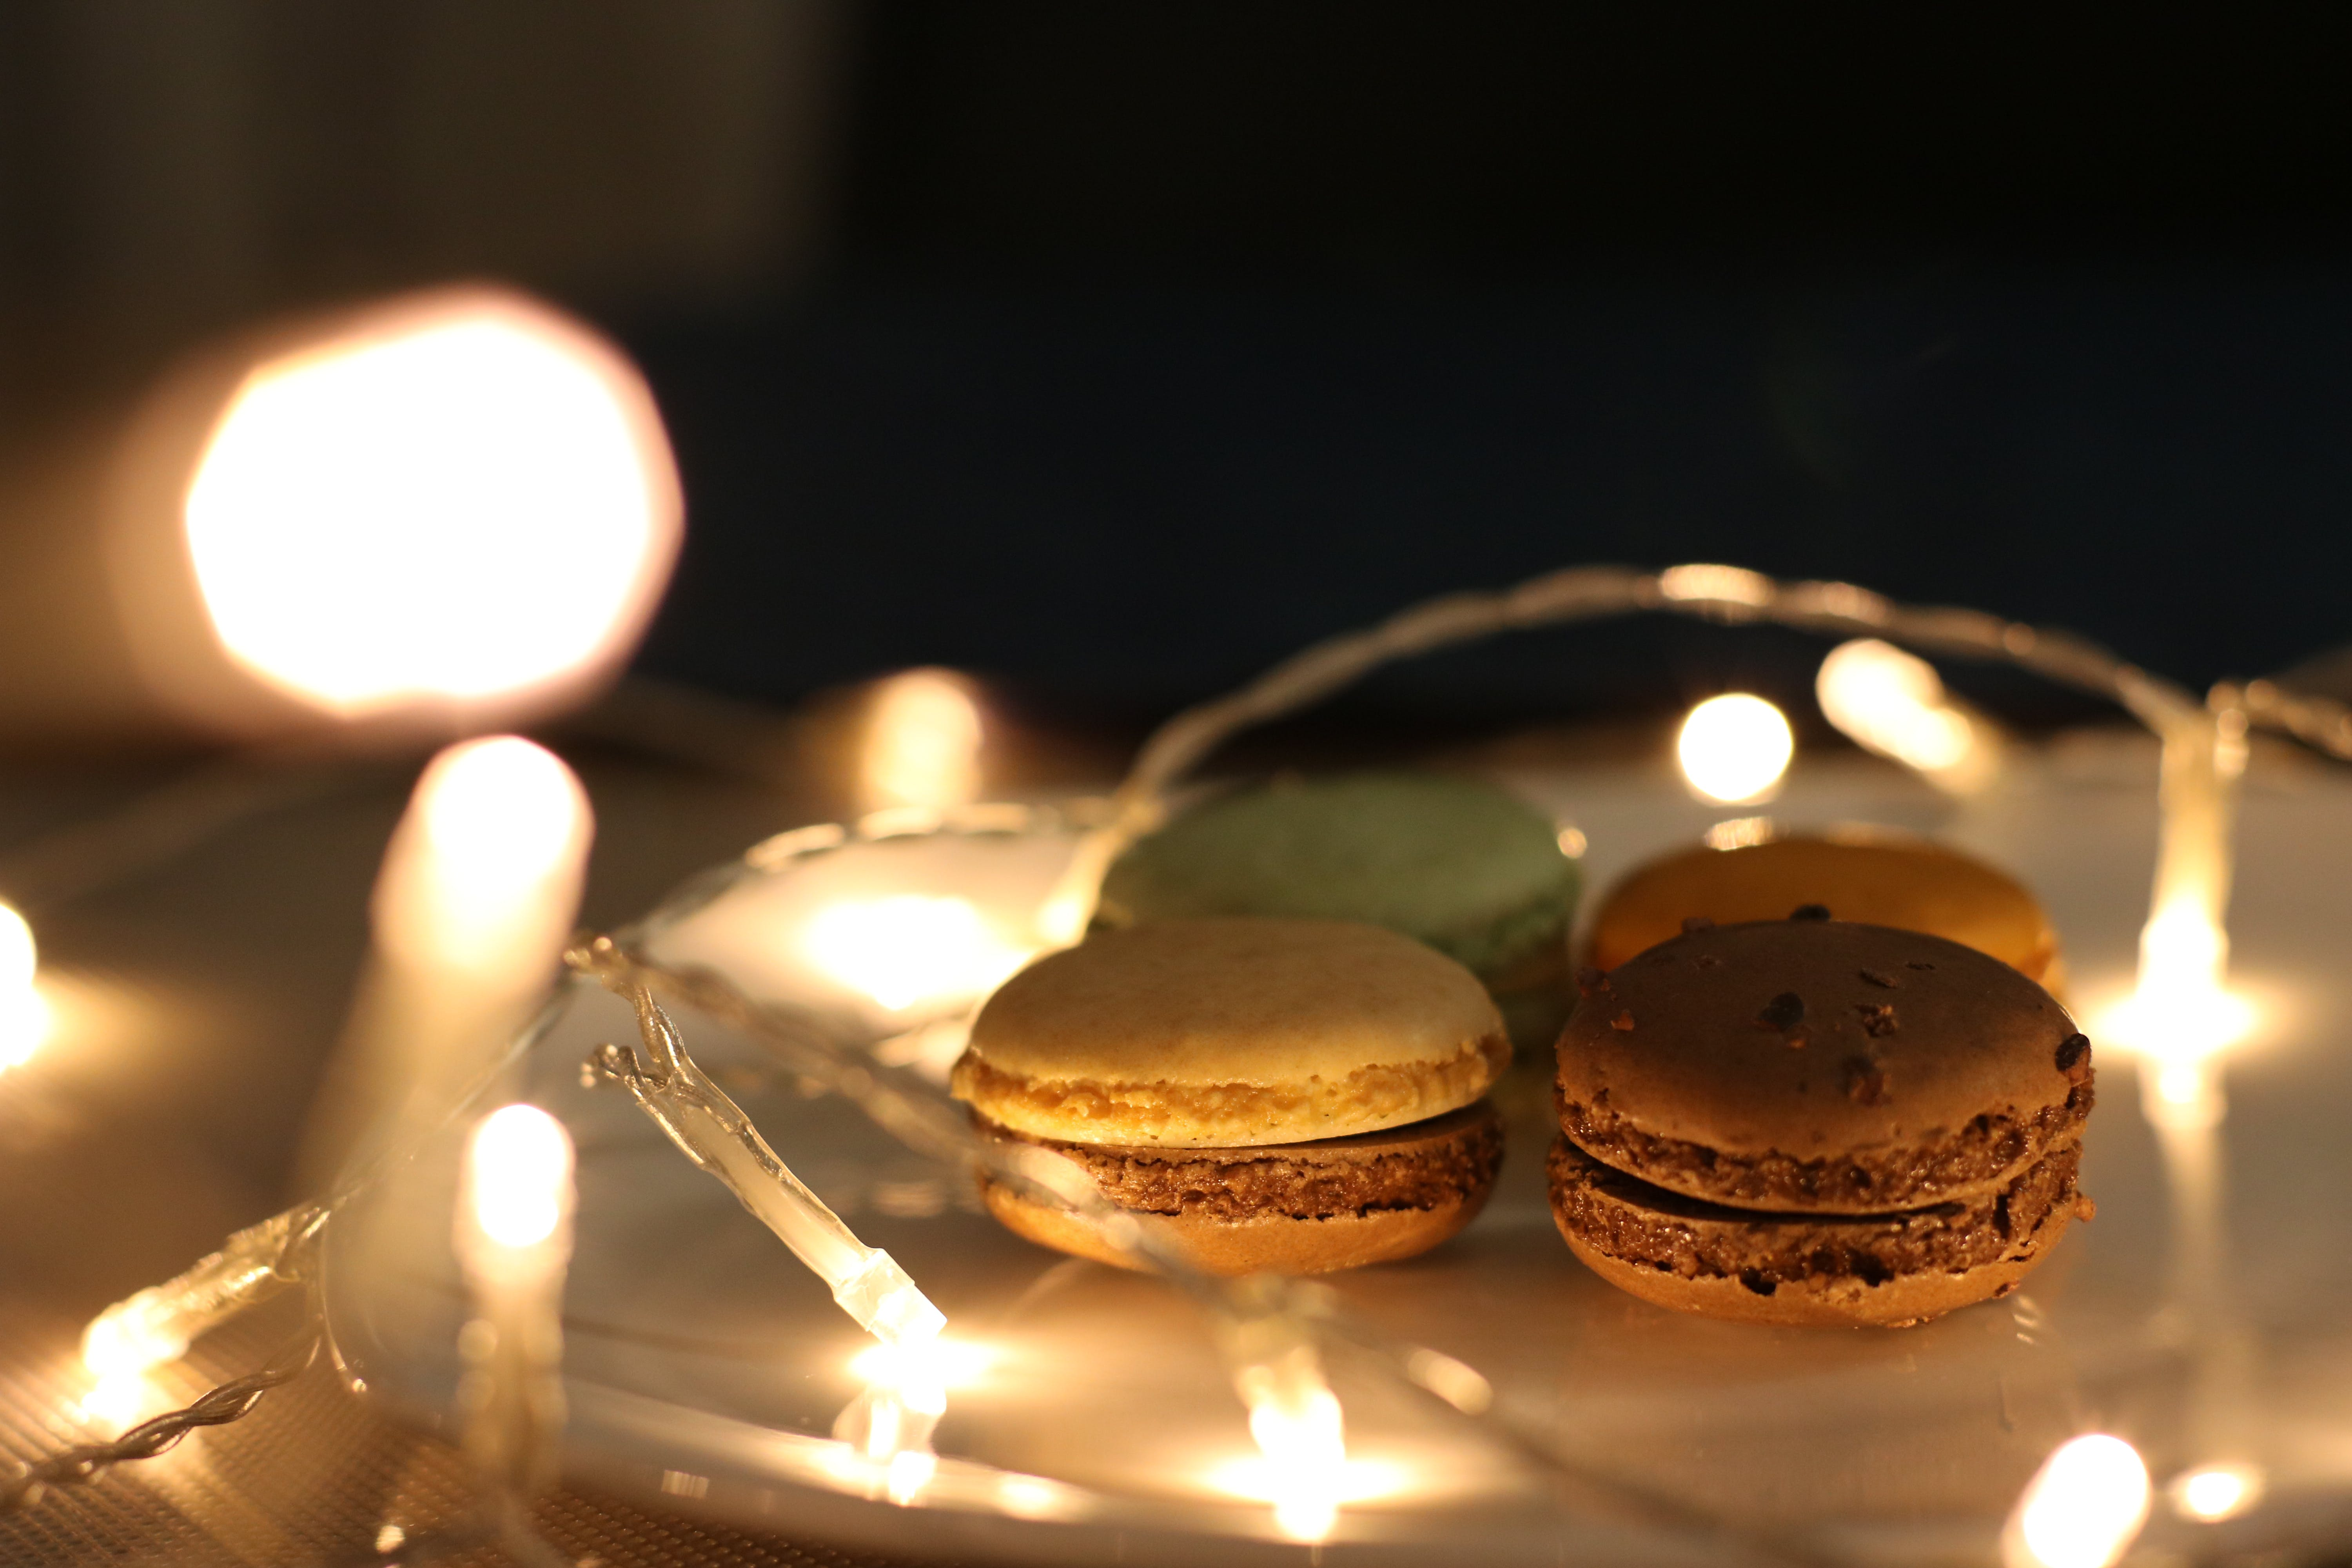 Photography of Macaroons